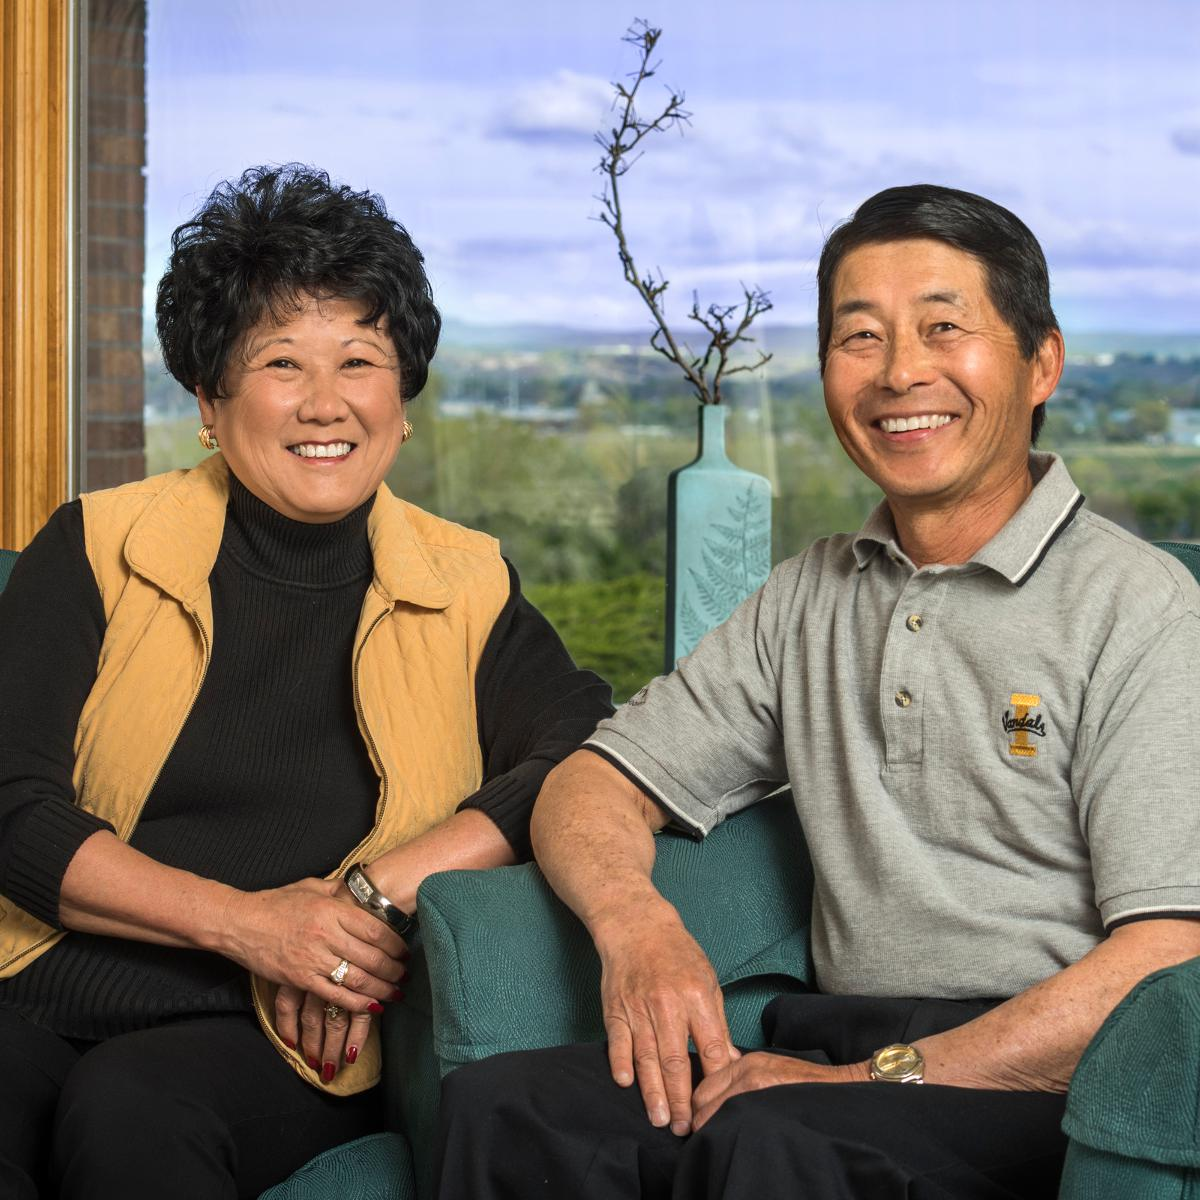 Dennis '70 and Debra (Murata) Ujiiye '73, University of Idaho alumni.